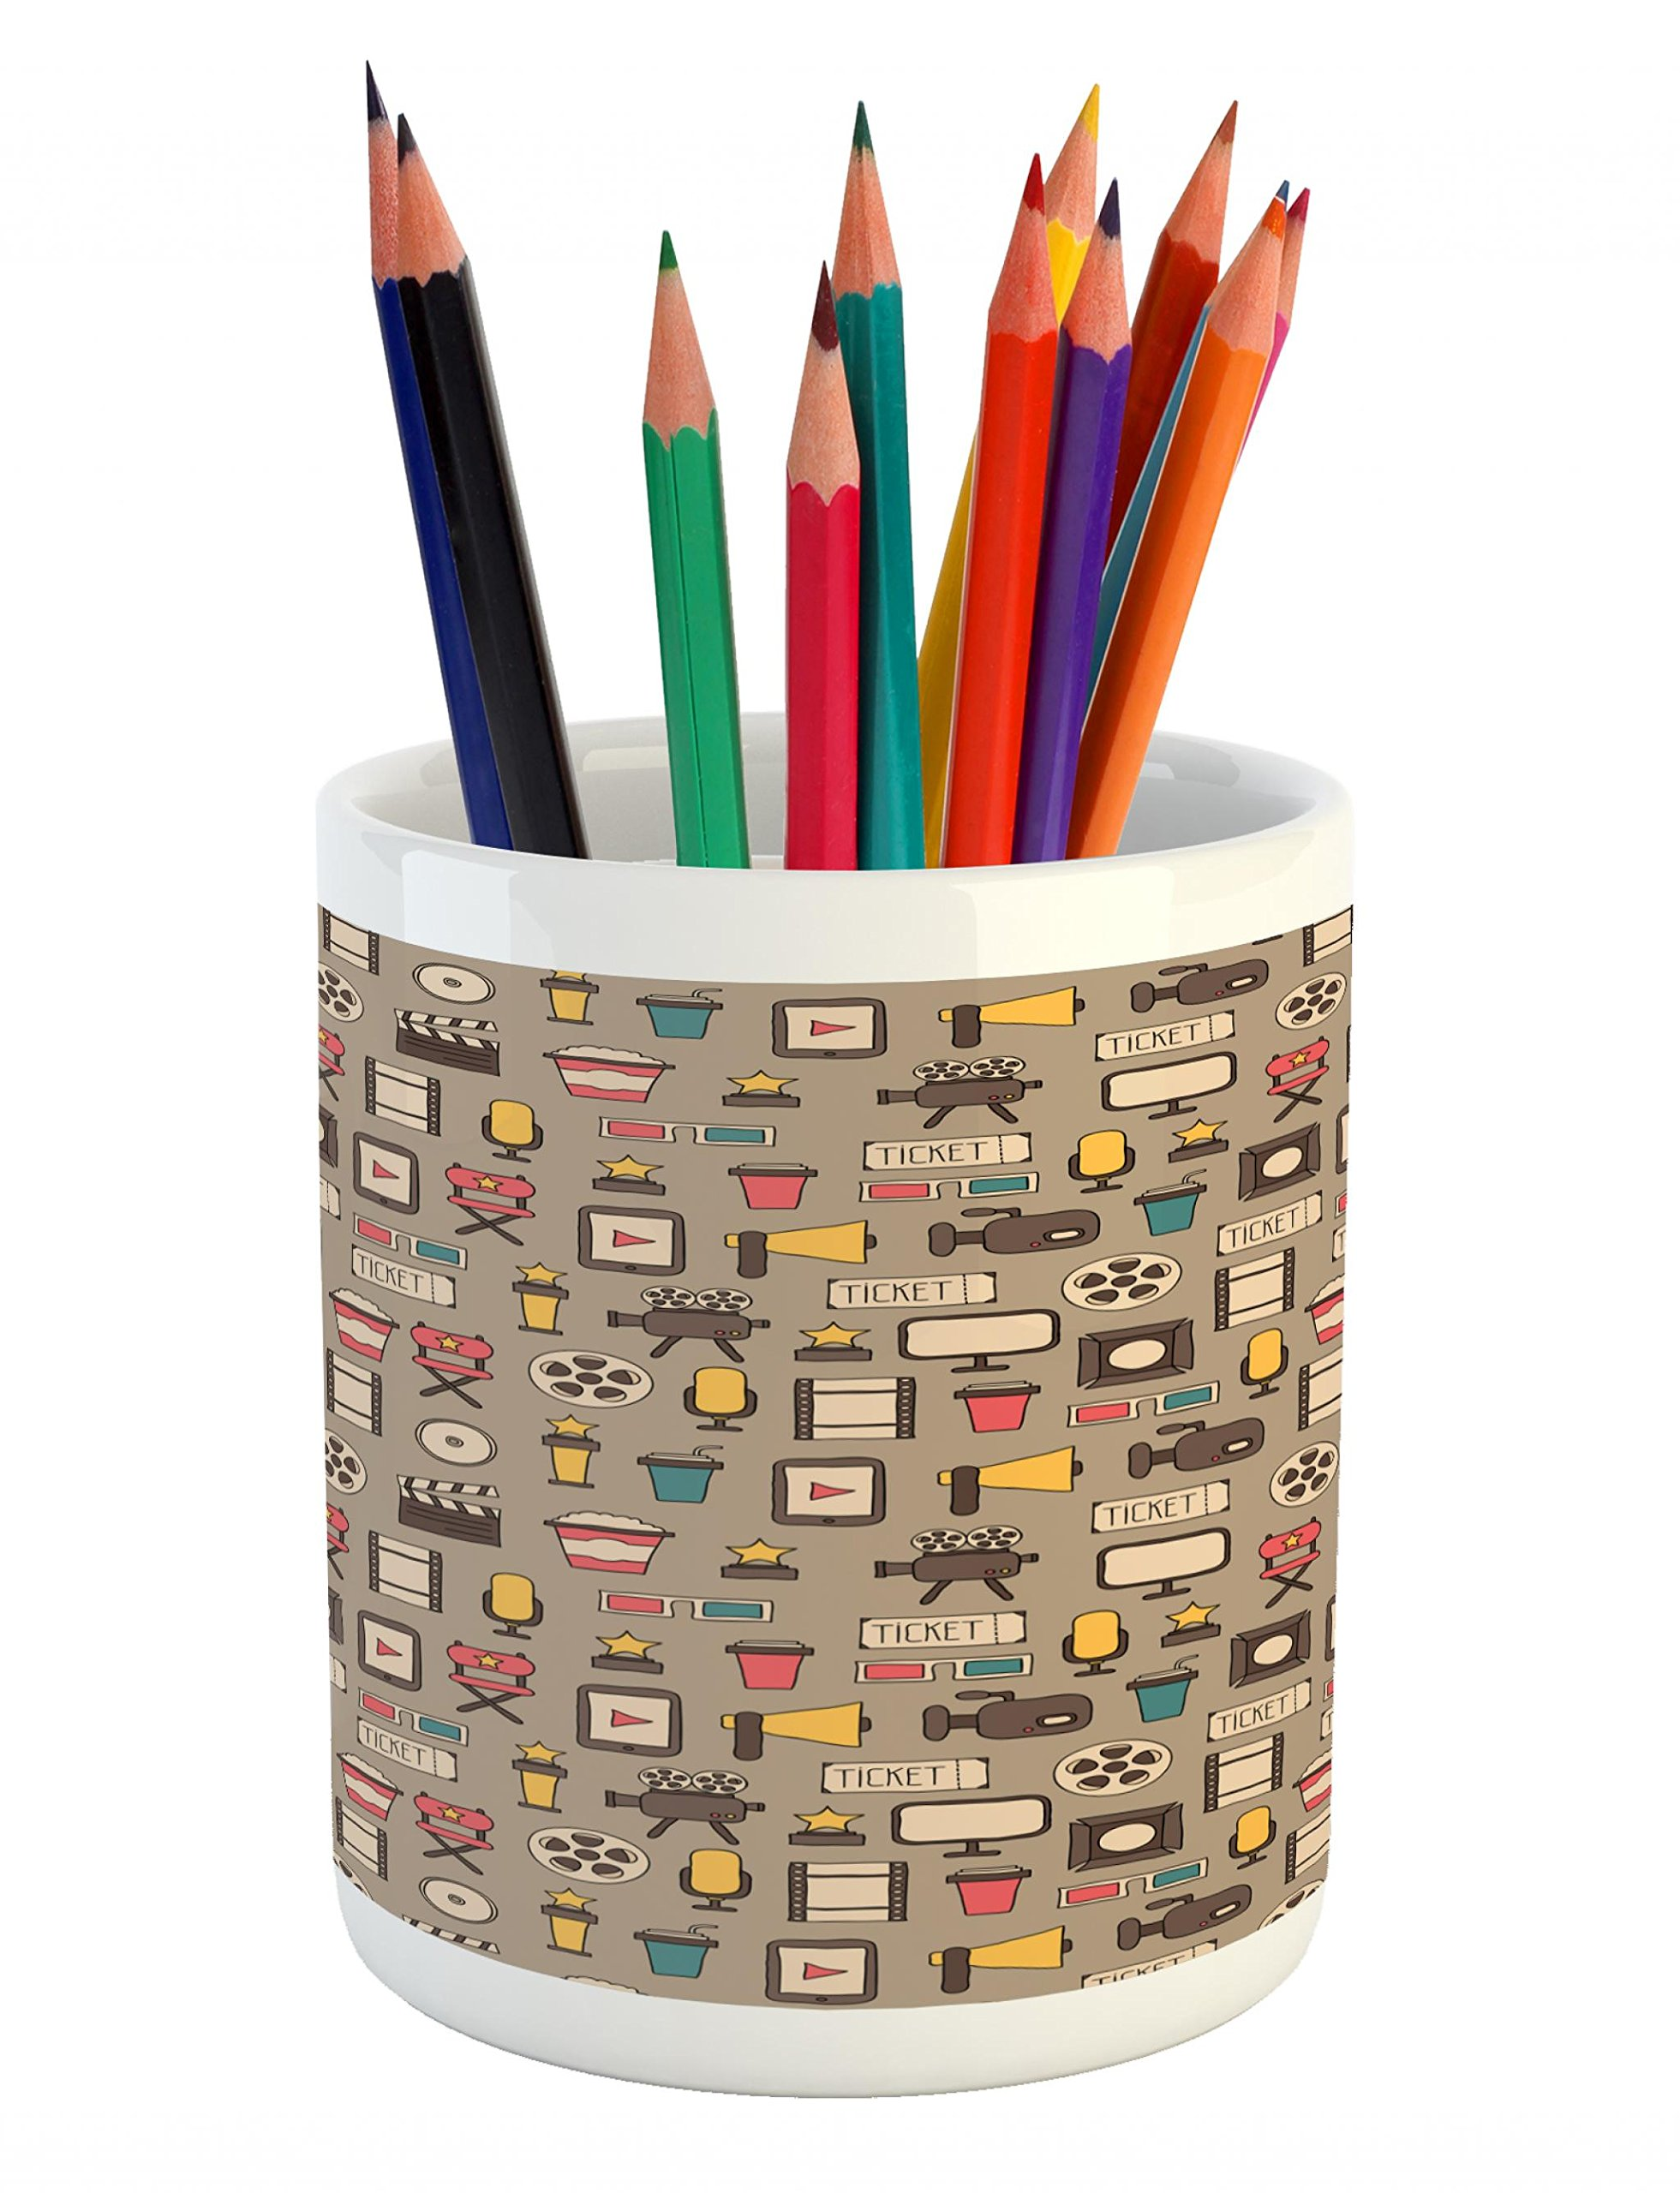 Lunarable Movie Theater Pencil Pen Holder, Retro Style Cameras Tickets Popcorn and Clapperboard Colorful Cinema Icons, Printed Ceramic Pencil Pen Holder for Desk Office Accessory, Multicolor